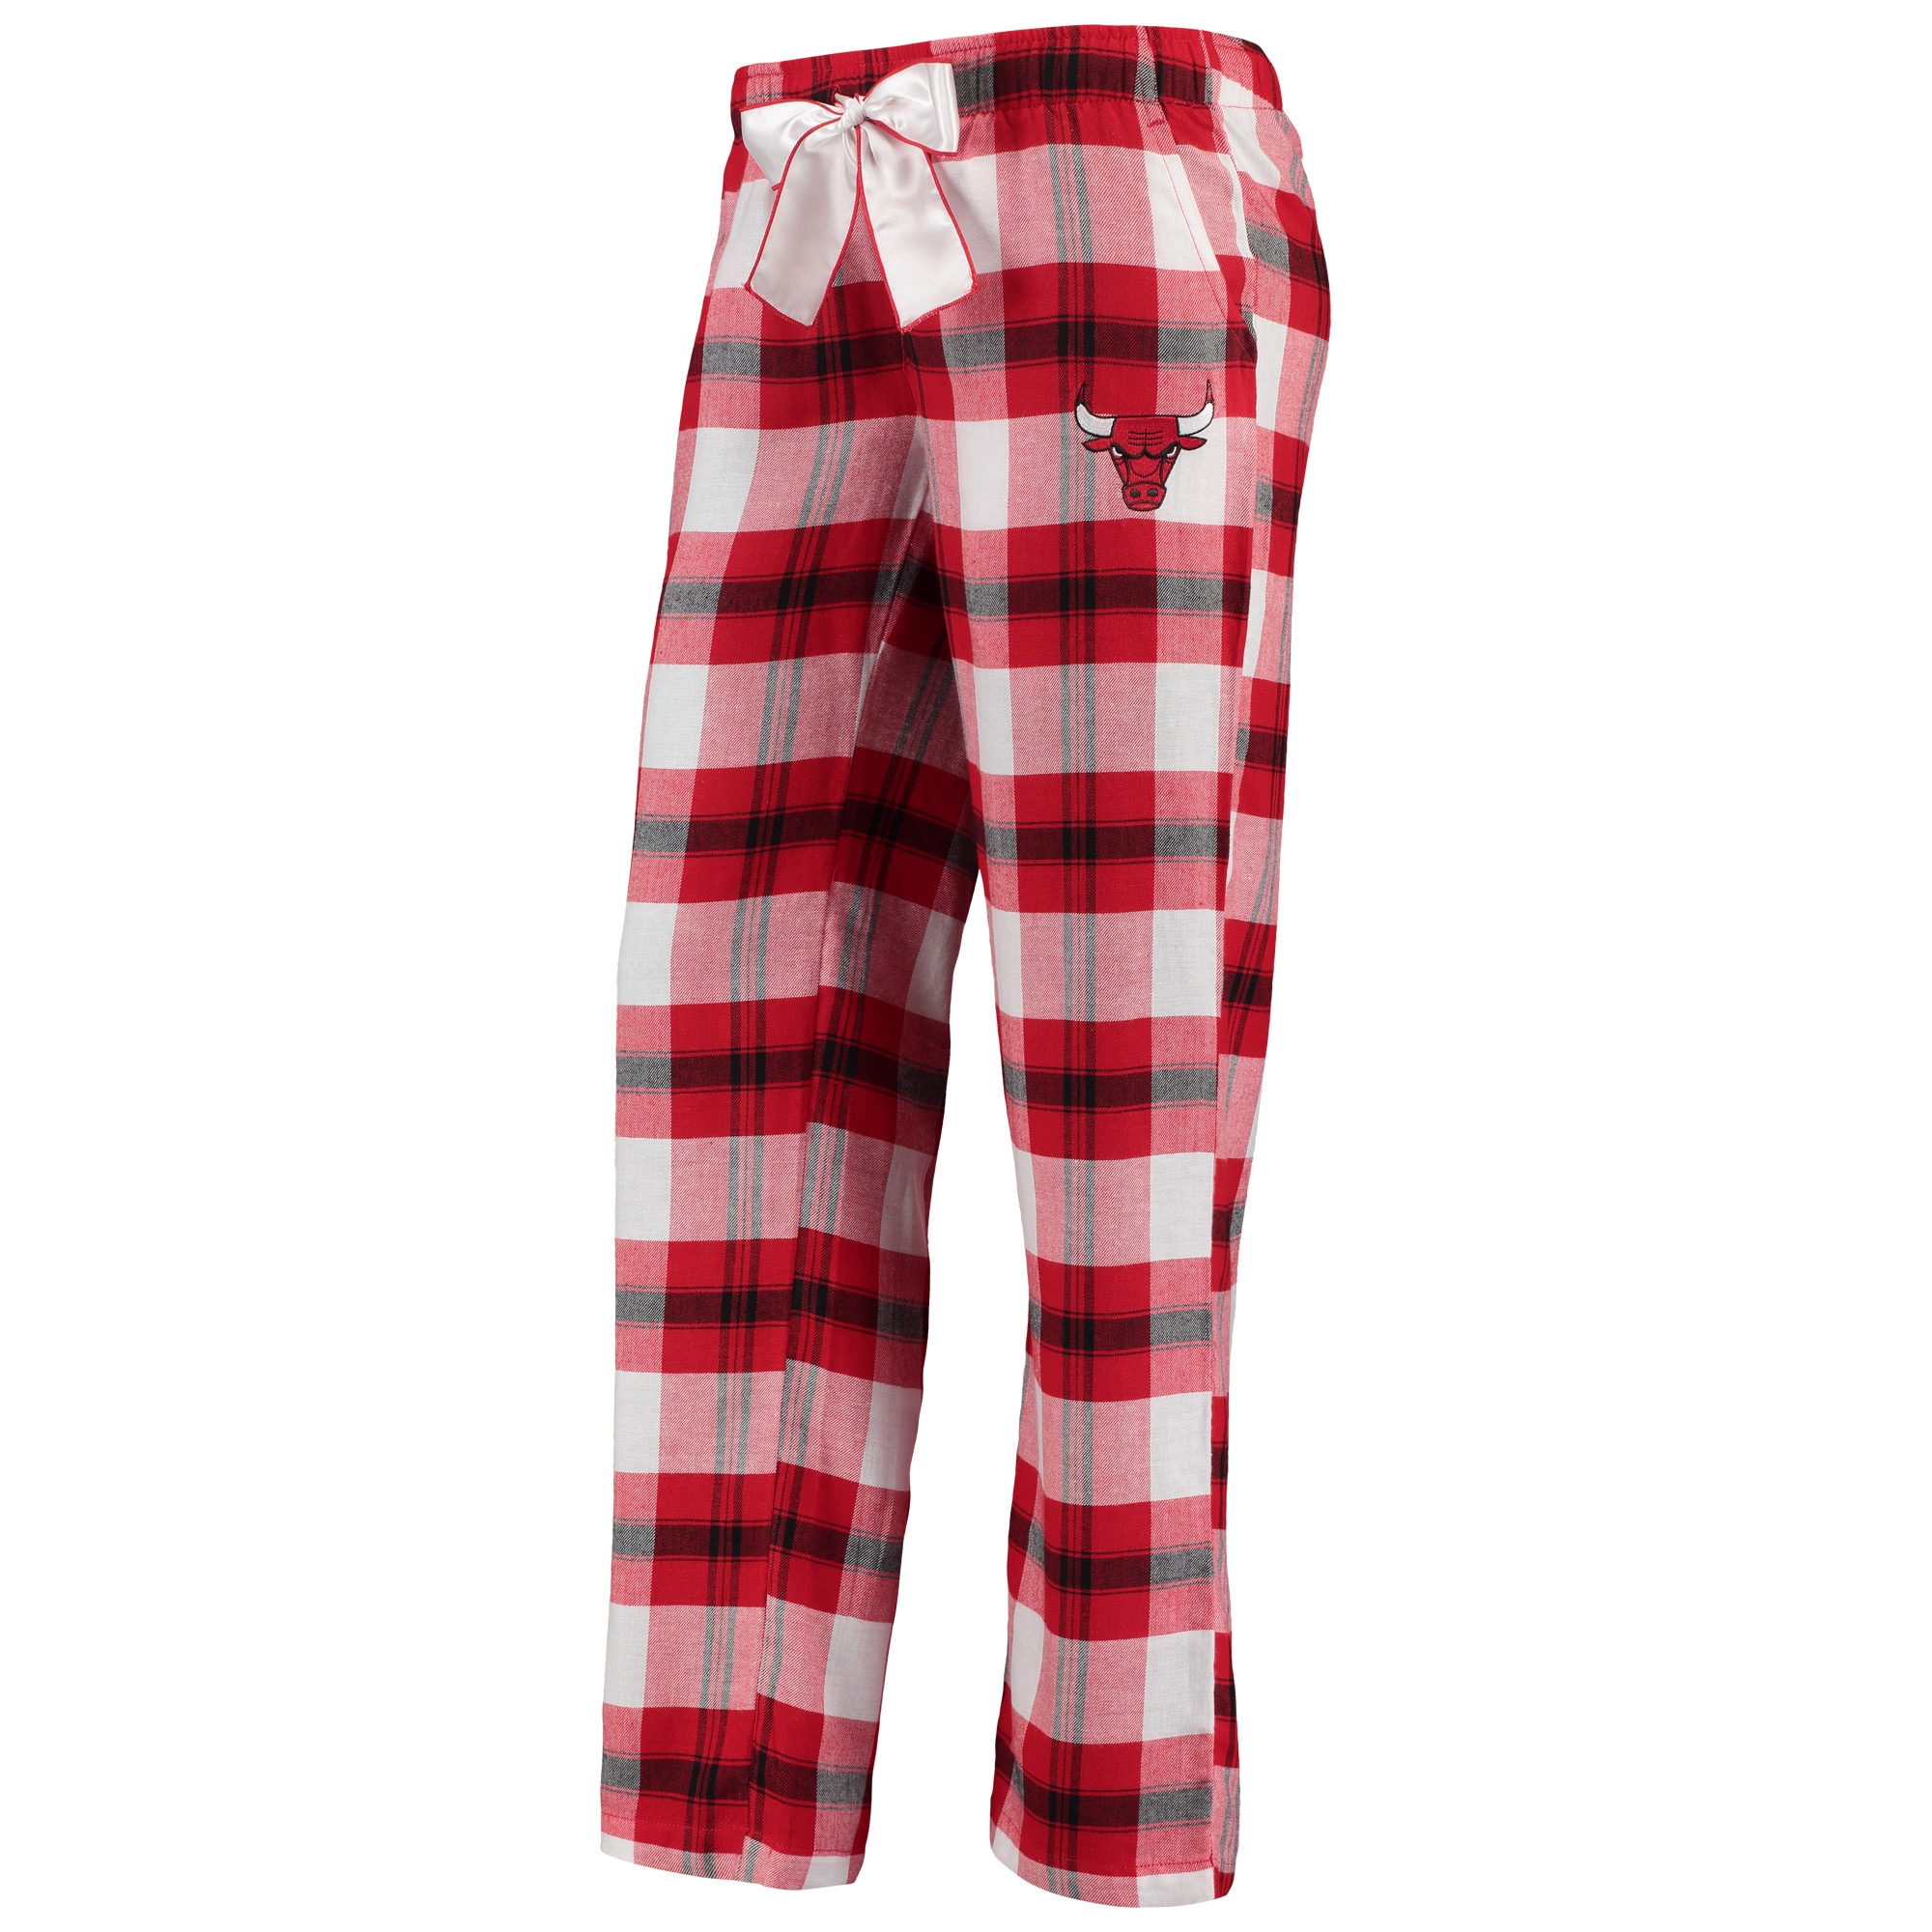 Chicago Bulls Concepts Sport Women's Headway Flannel Pants - Red/Black